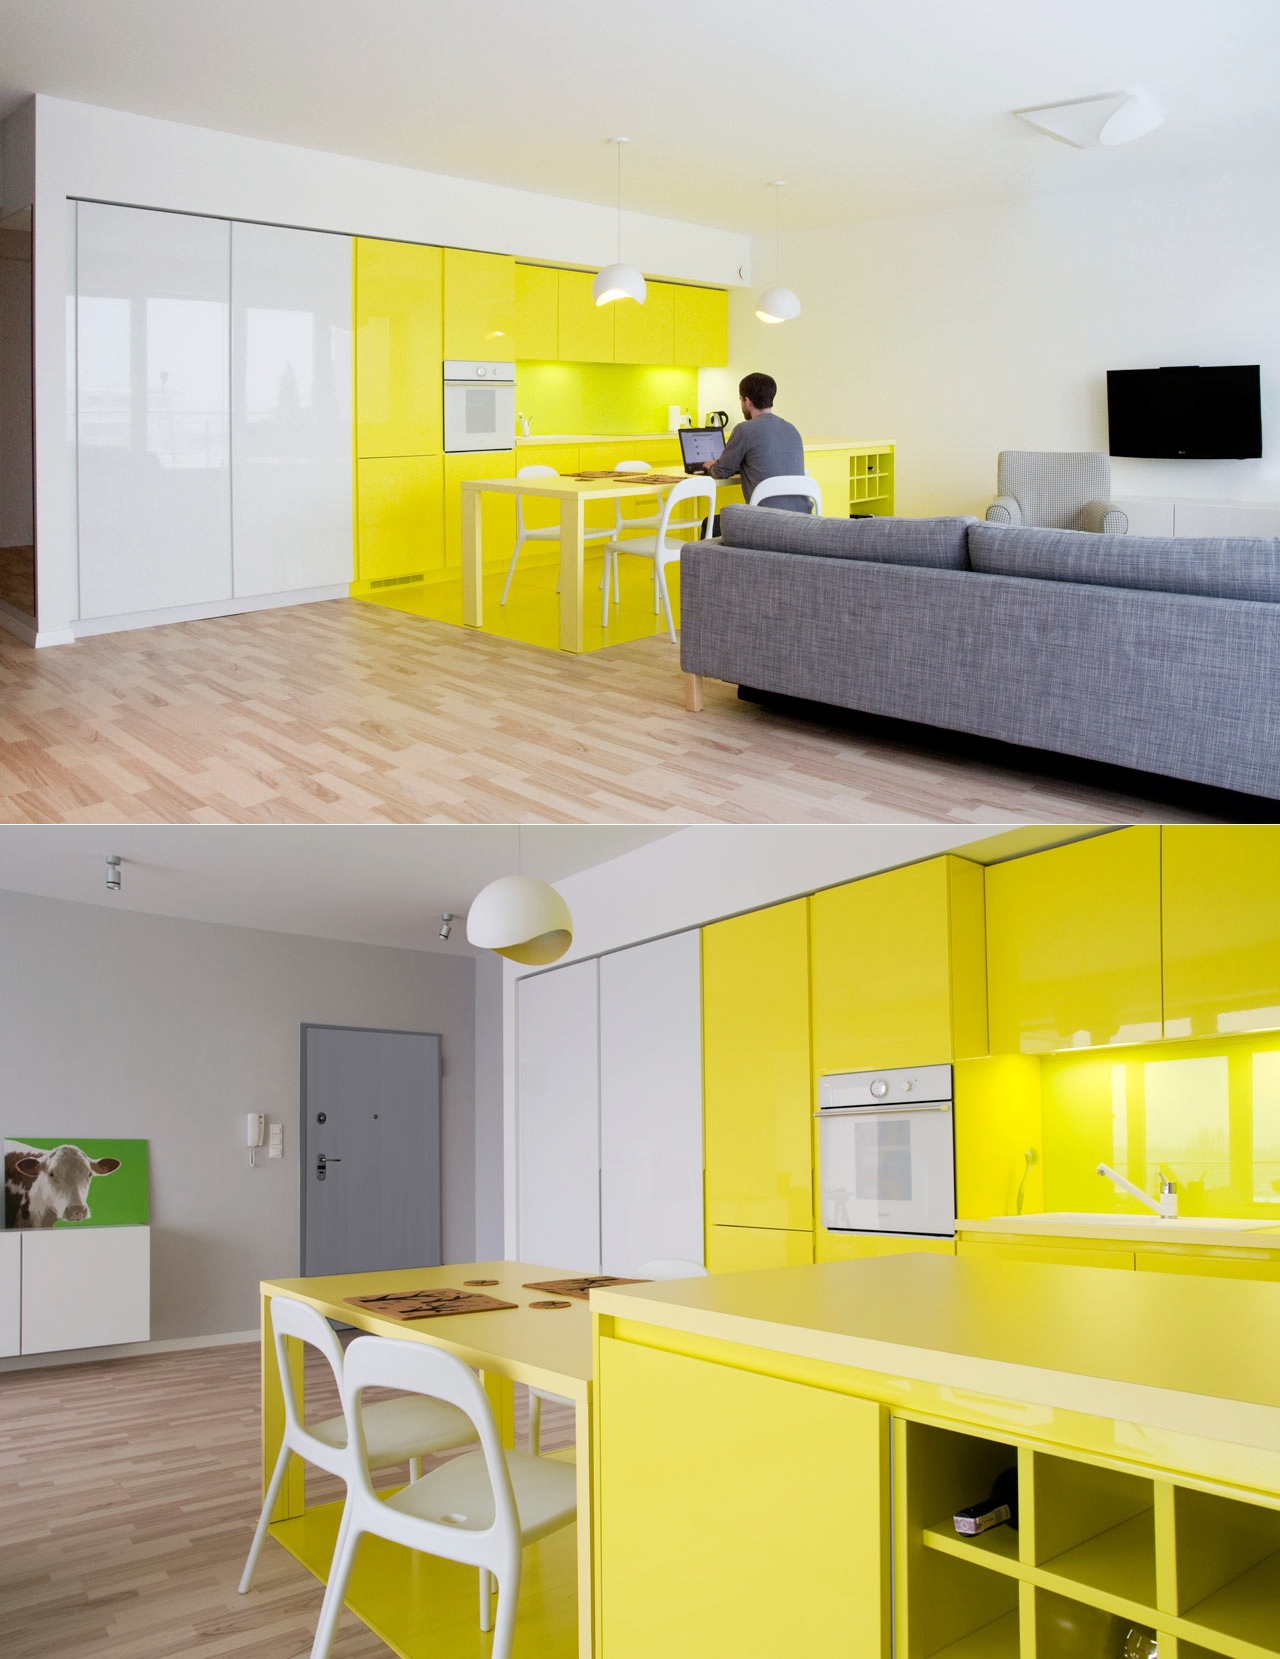 neon-yellow-kitchen-in-open-layout-home - Awesome Decors on golden yellow kitchen ideas, bright country kitchen ideas, yellow kitchen decorating ideas, yellow kitchen wall ideas, bright yellow room ideas, bright yellow interiors, bright yellow fashion, gray and yellow kitchen ideas, bright yellow bathroom ideas, bright yellow kitchen decorations, yellow kitchen color ideas, bright yellow living rooms, blue and yellow kitchen ideas, lemon yellow kitchen ideas, yellow country kitchen ideas, soft yellow kitchen ideas, bright yellow color, bright yellow dining room, bright yellow walls, bright yellow laundry rooms,